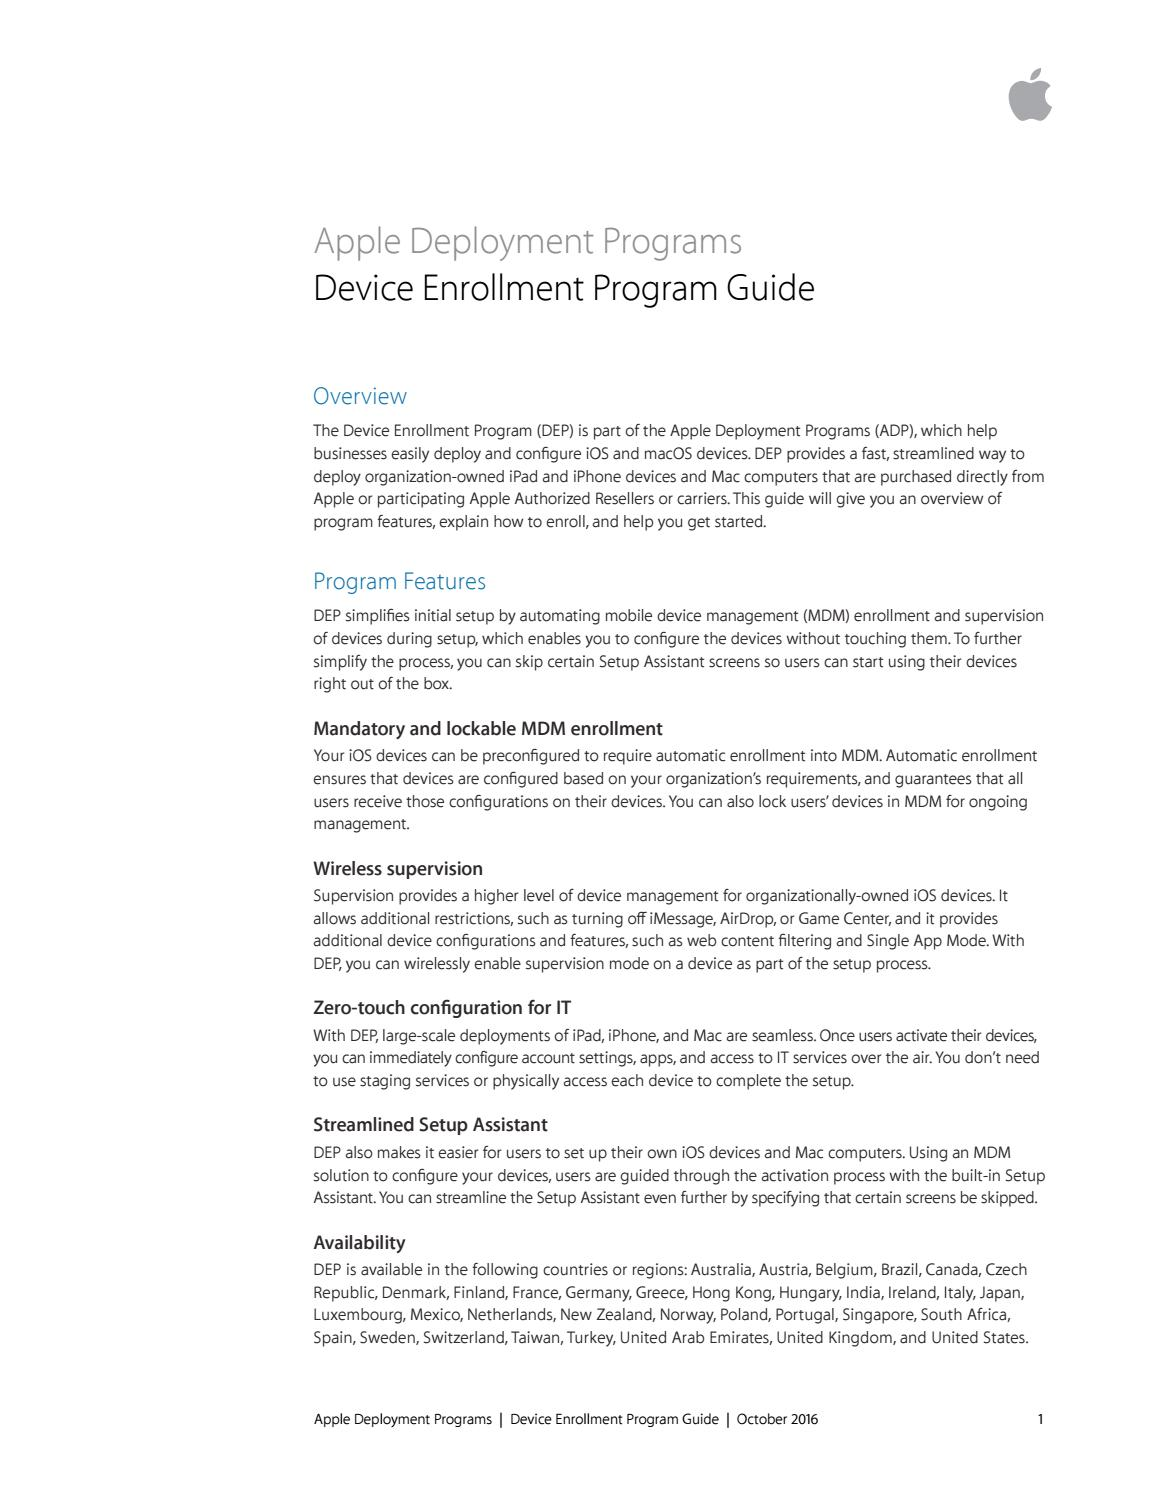 Apple Deployment Programs by iStore SA - issuu